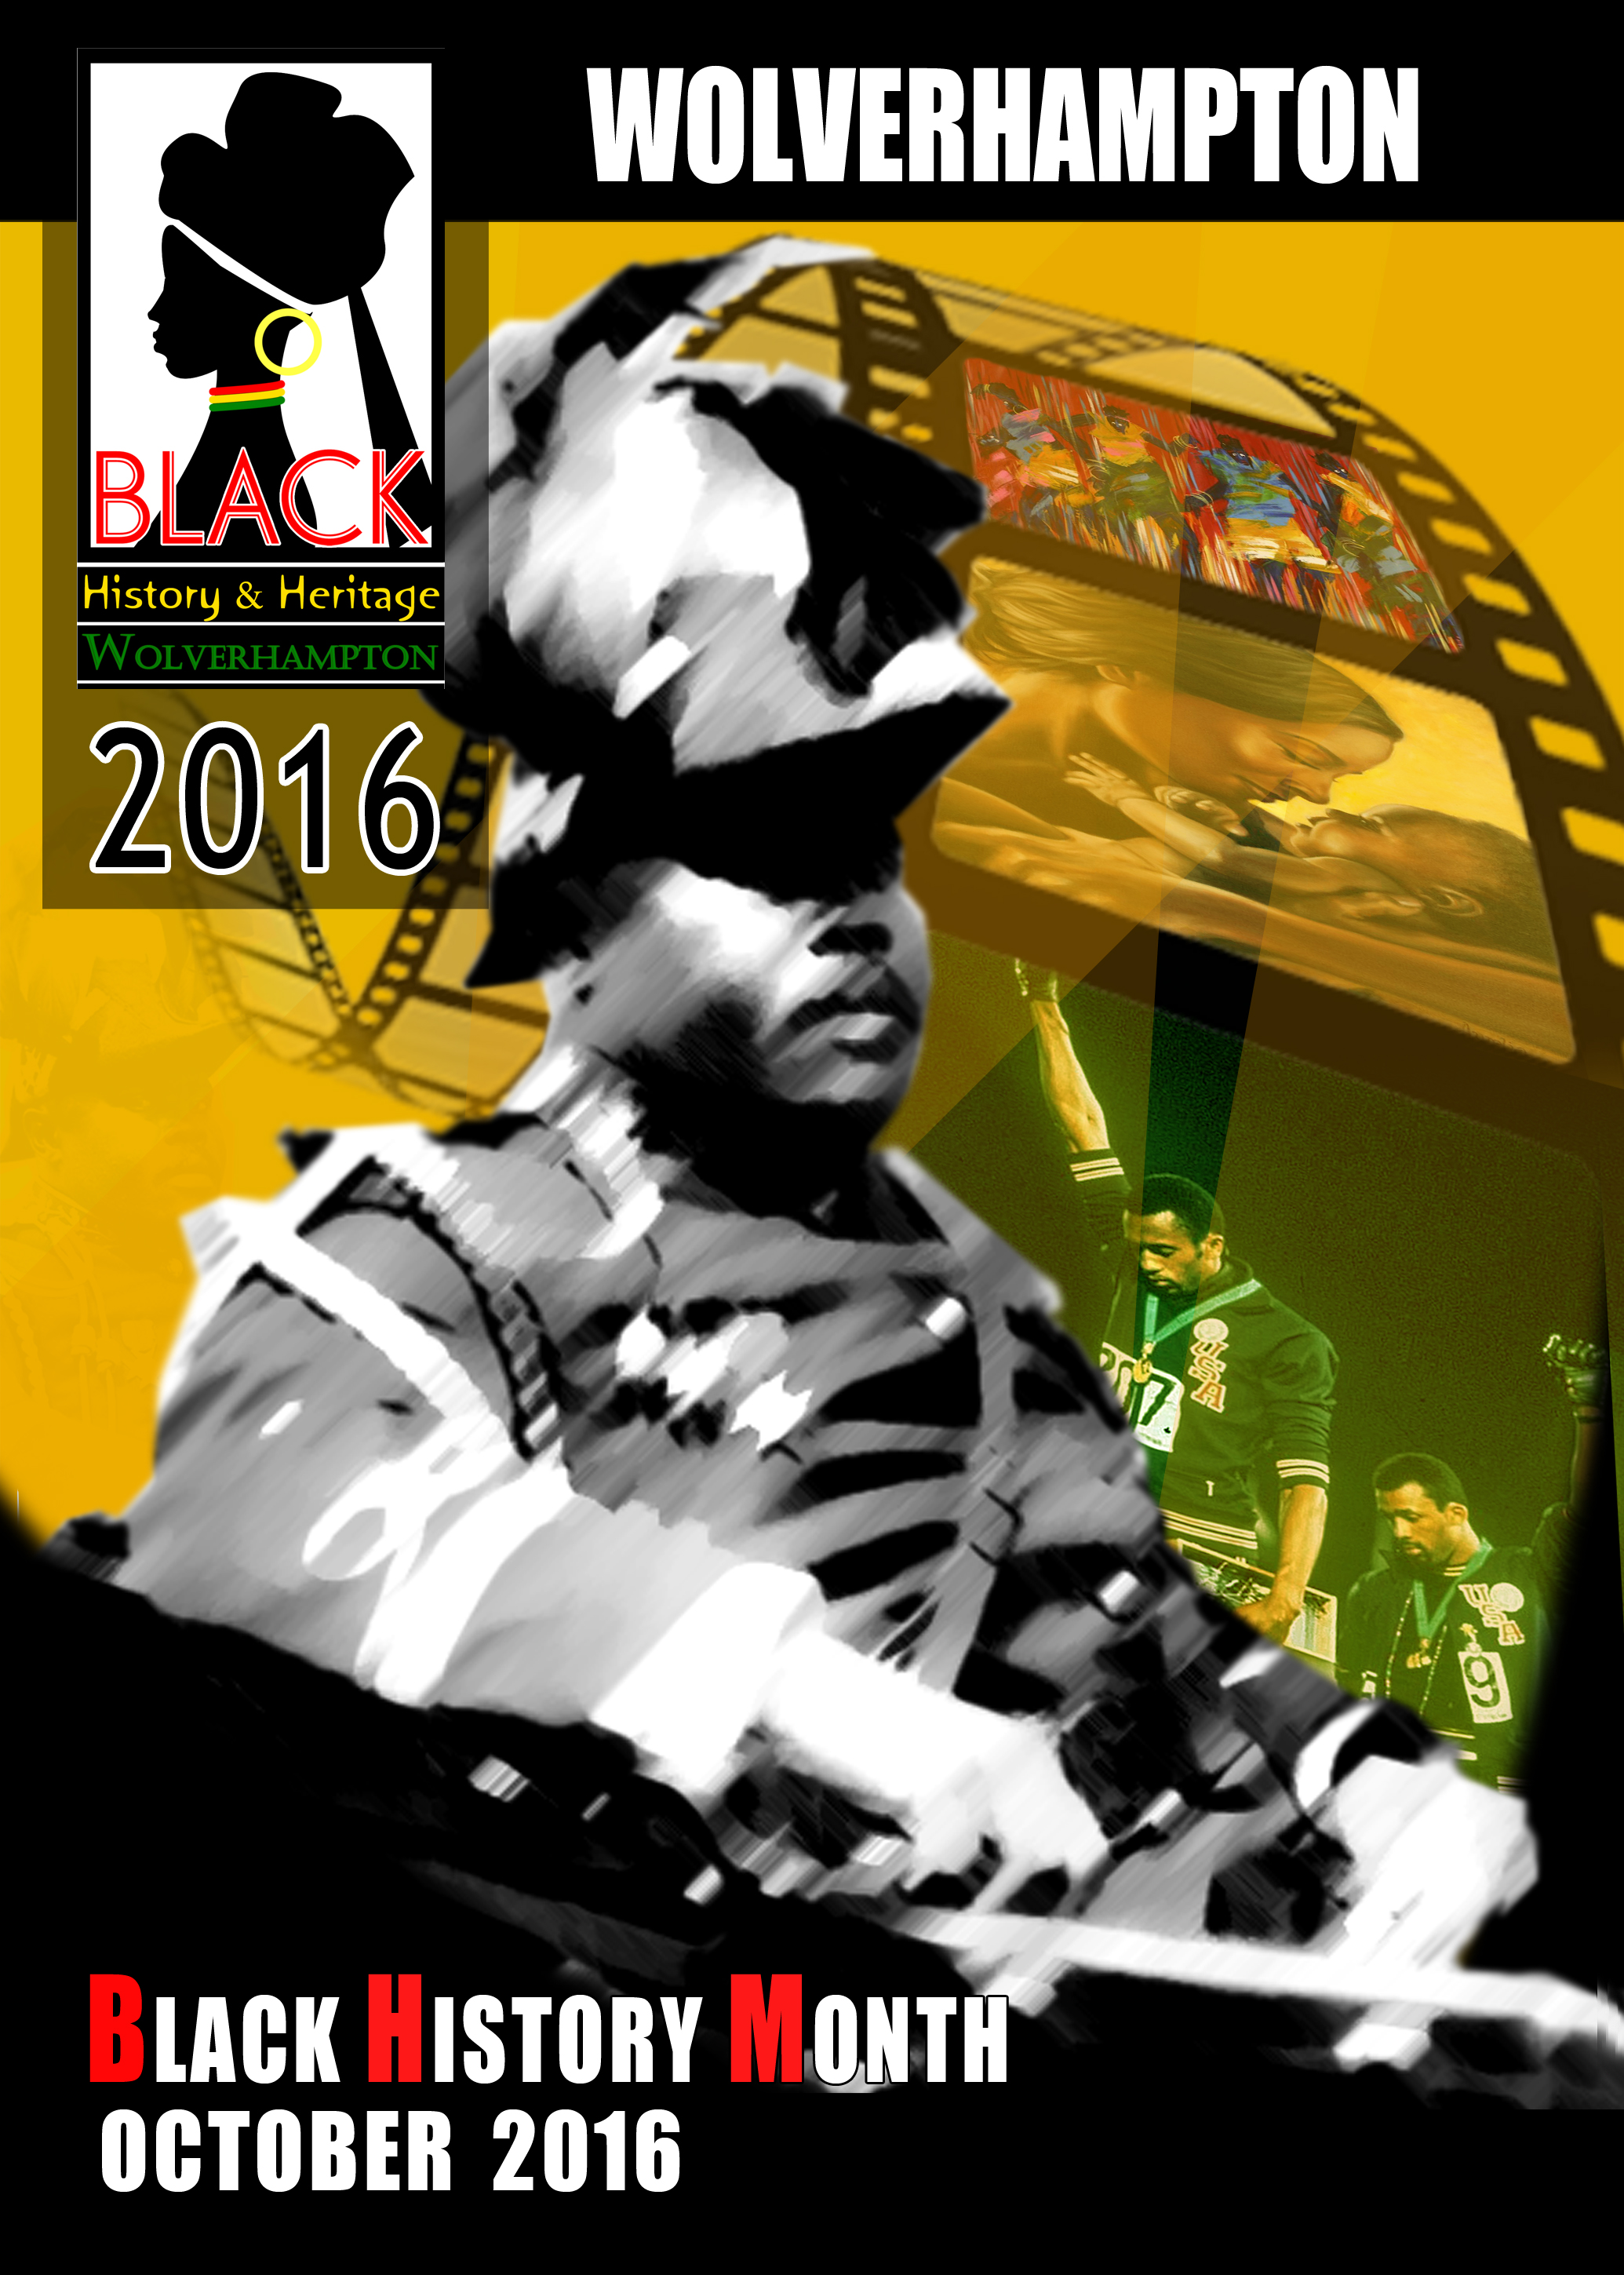 Black History Month Wolverhampton Booklet 2016